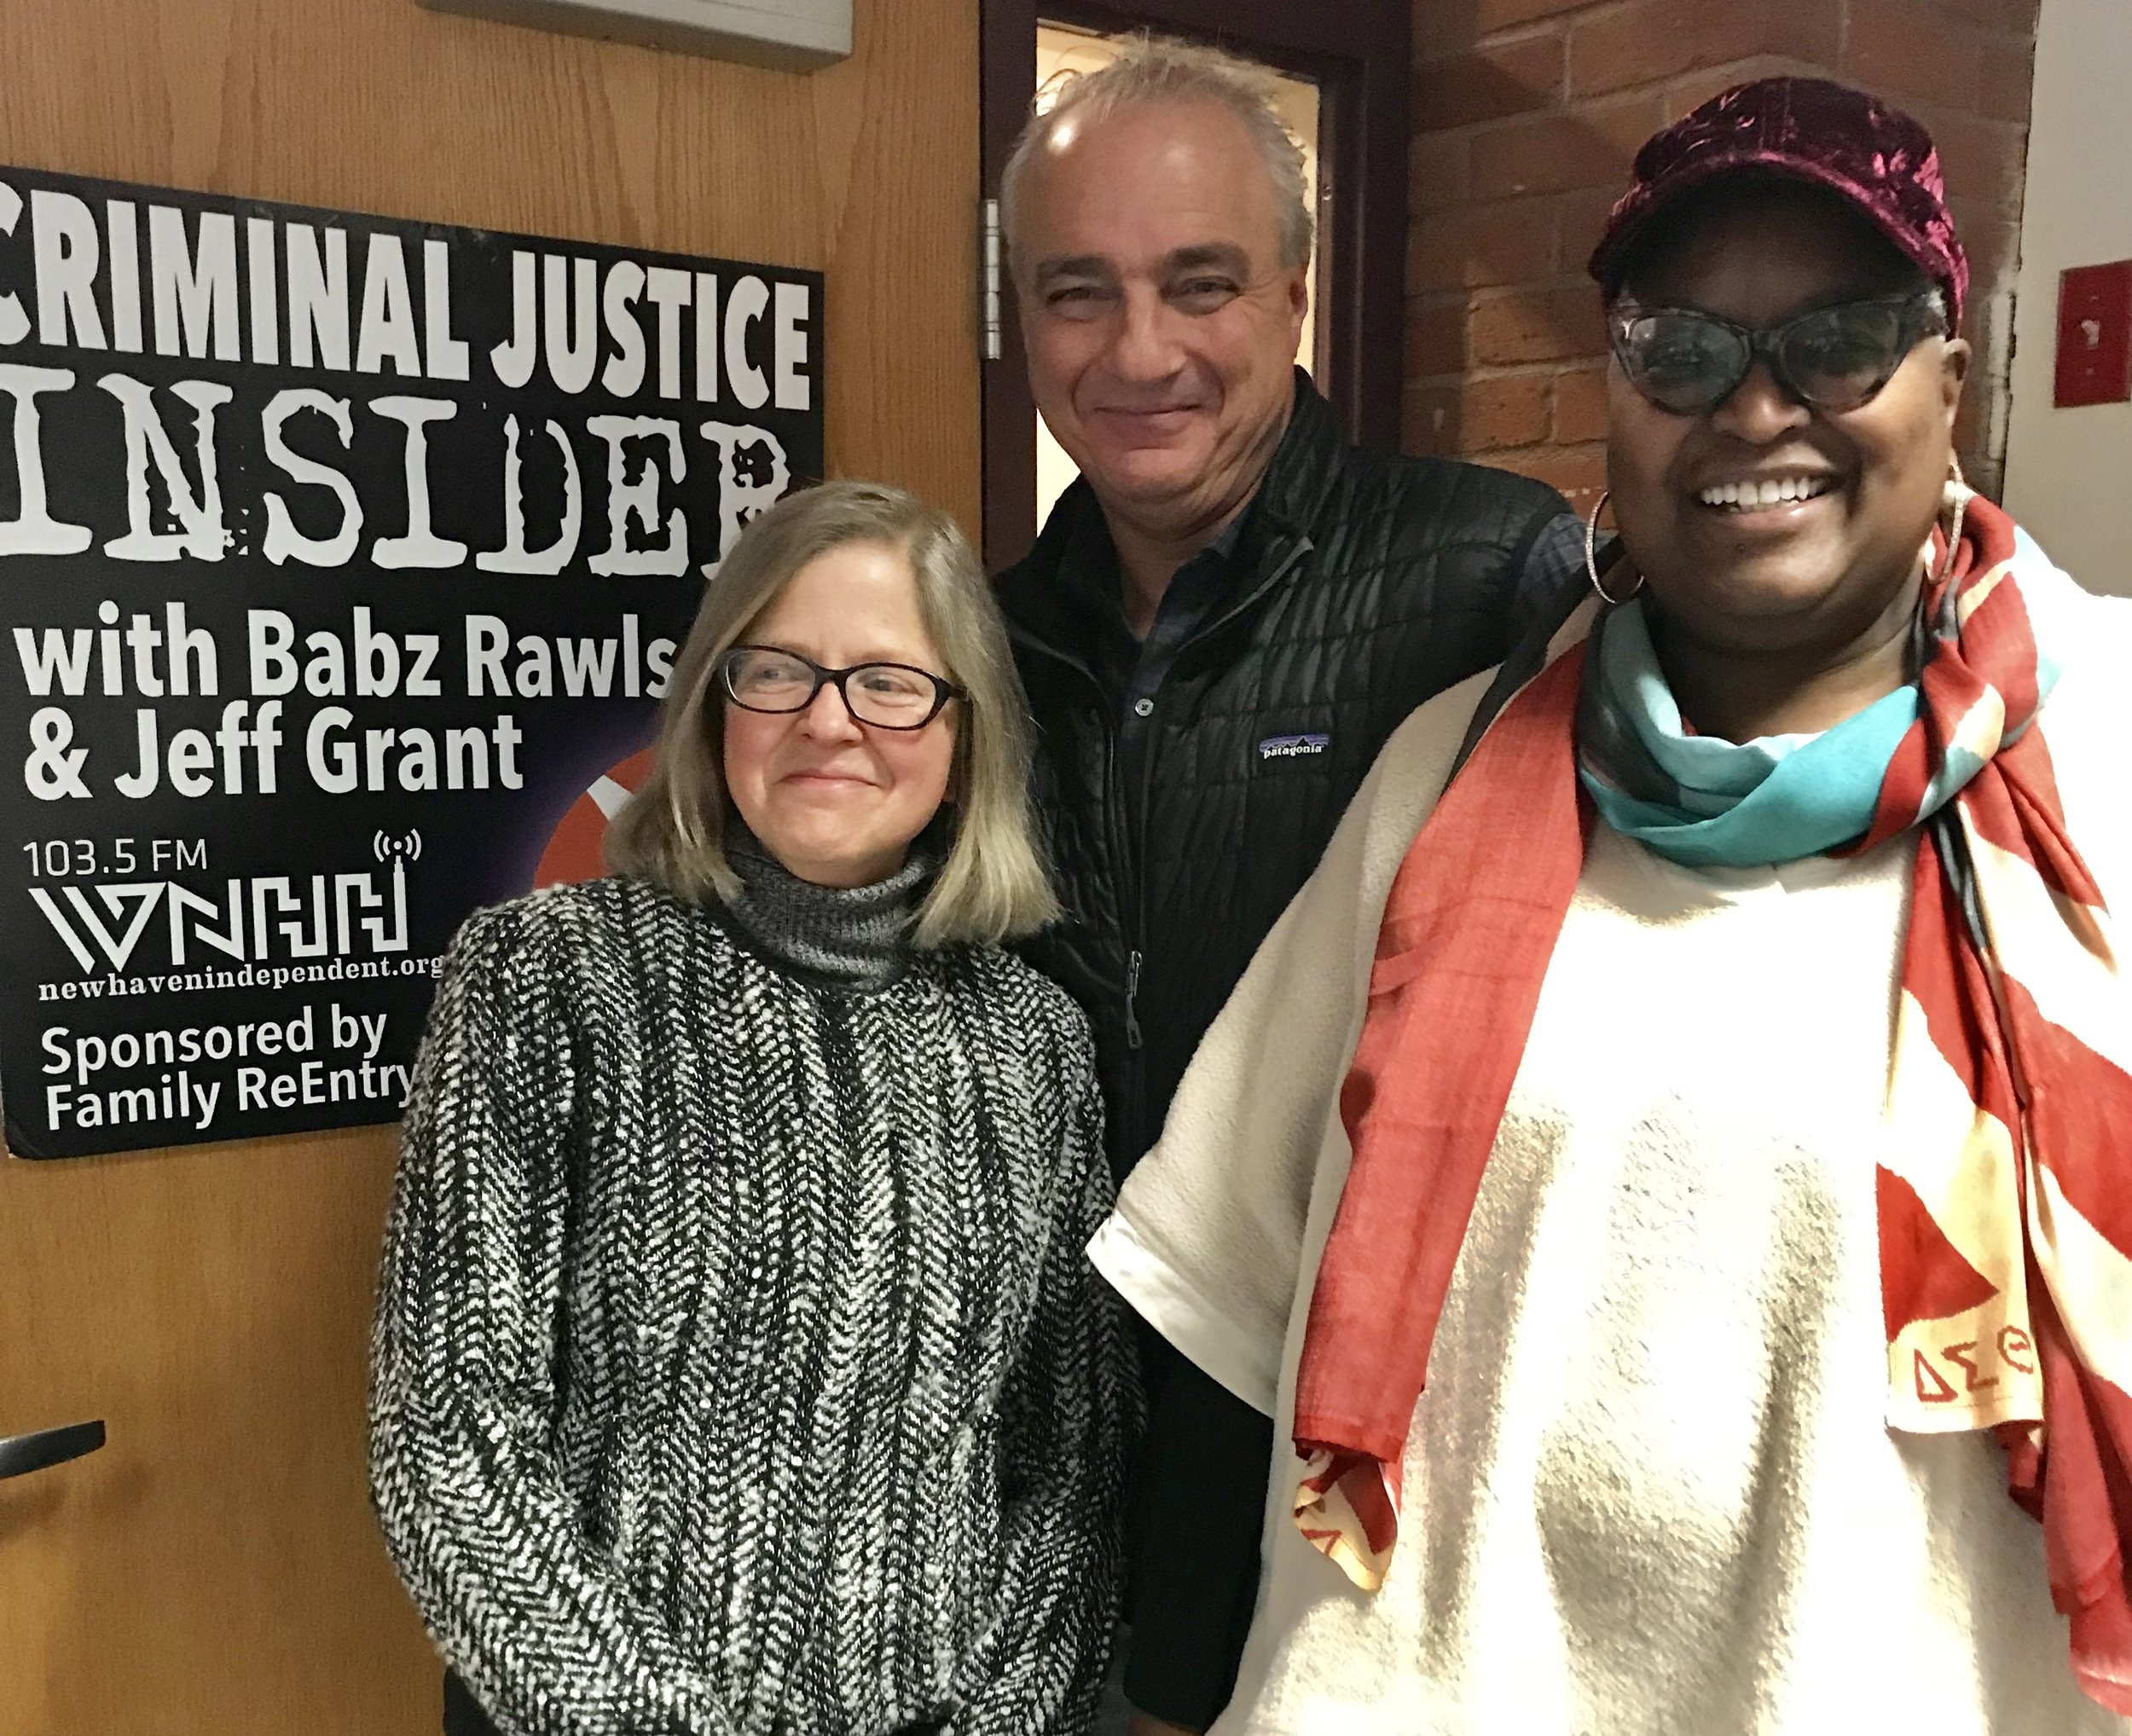 Cynthia Farrar (left) with Criminal Justice Insider hosts Jeff Grant and Babz Rawls Ivy.